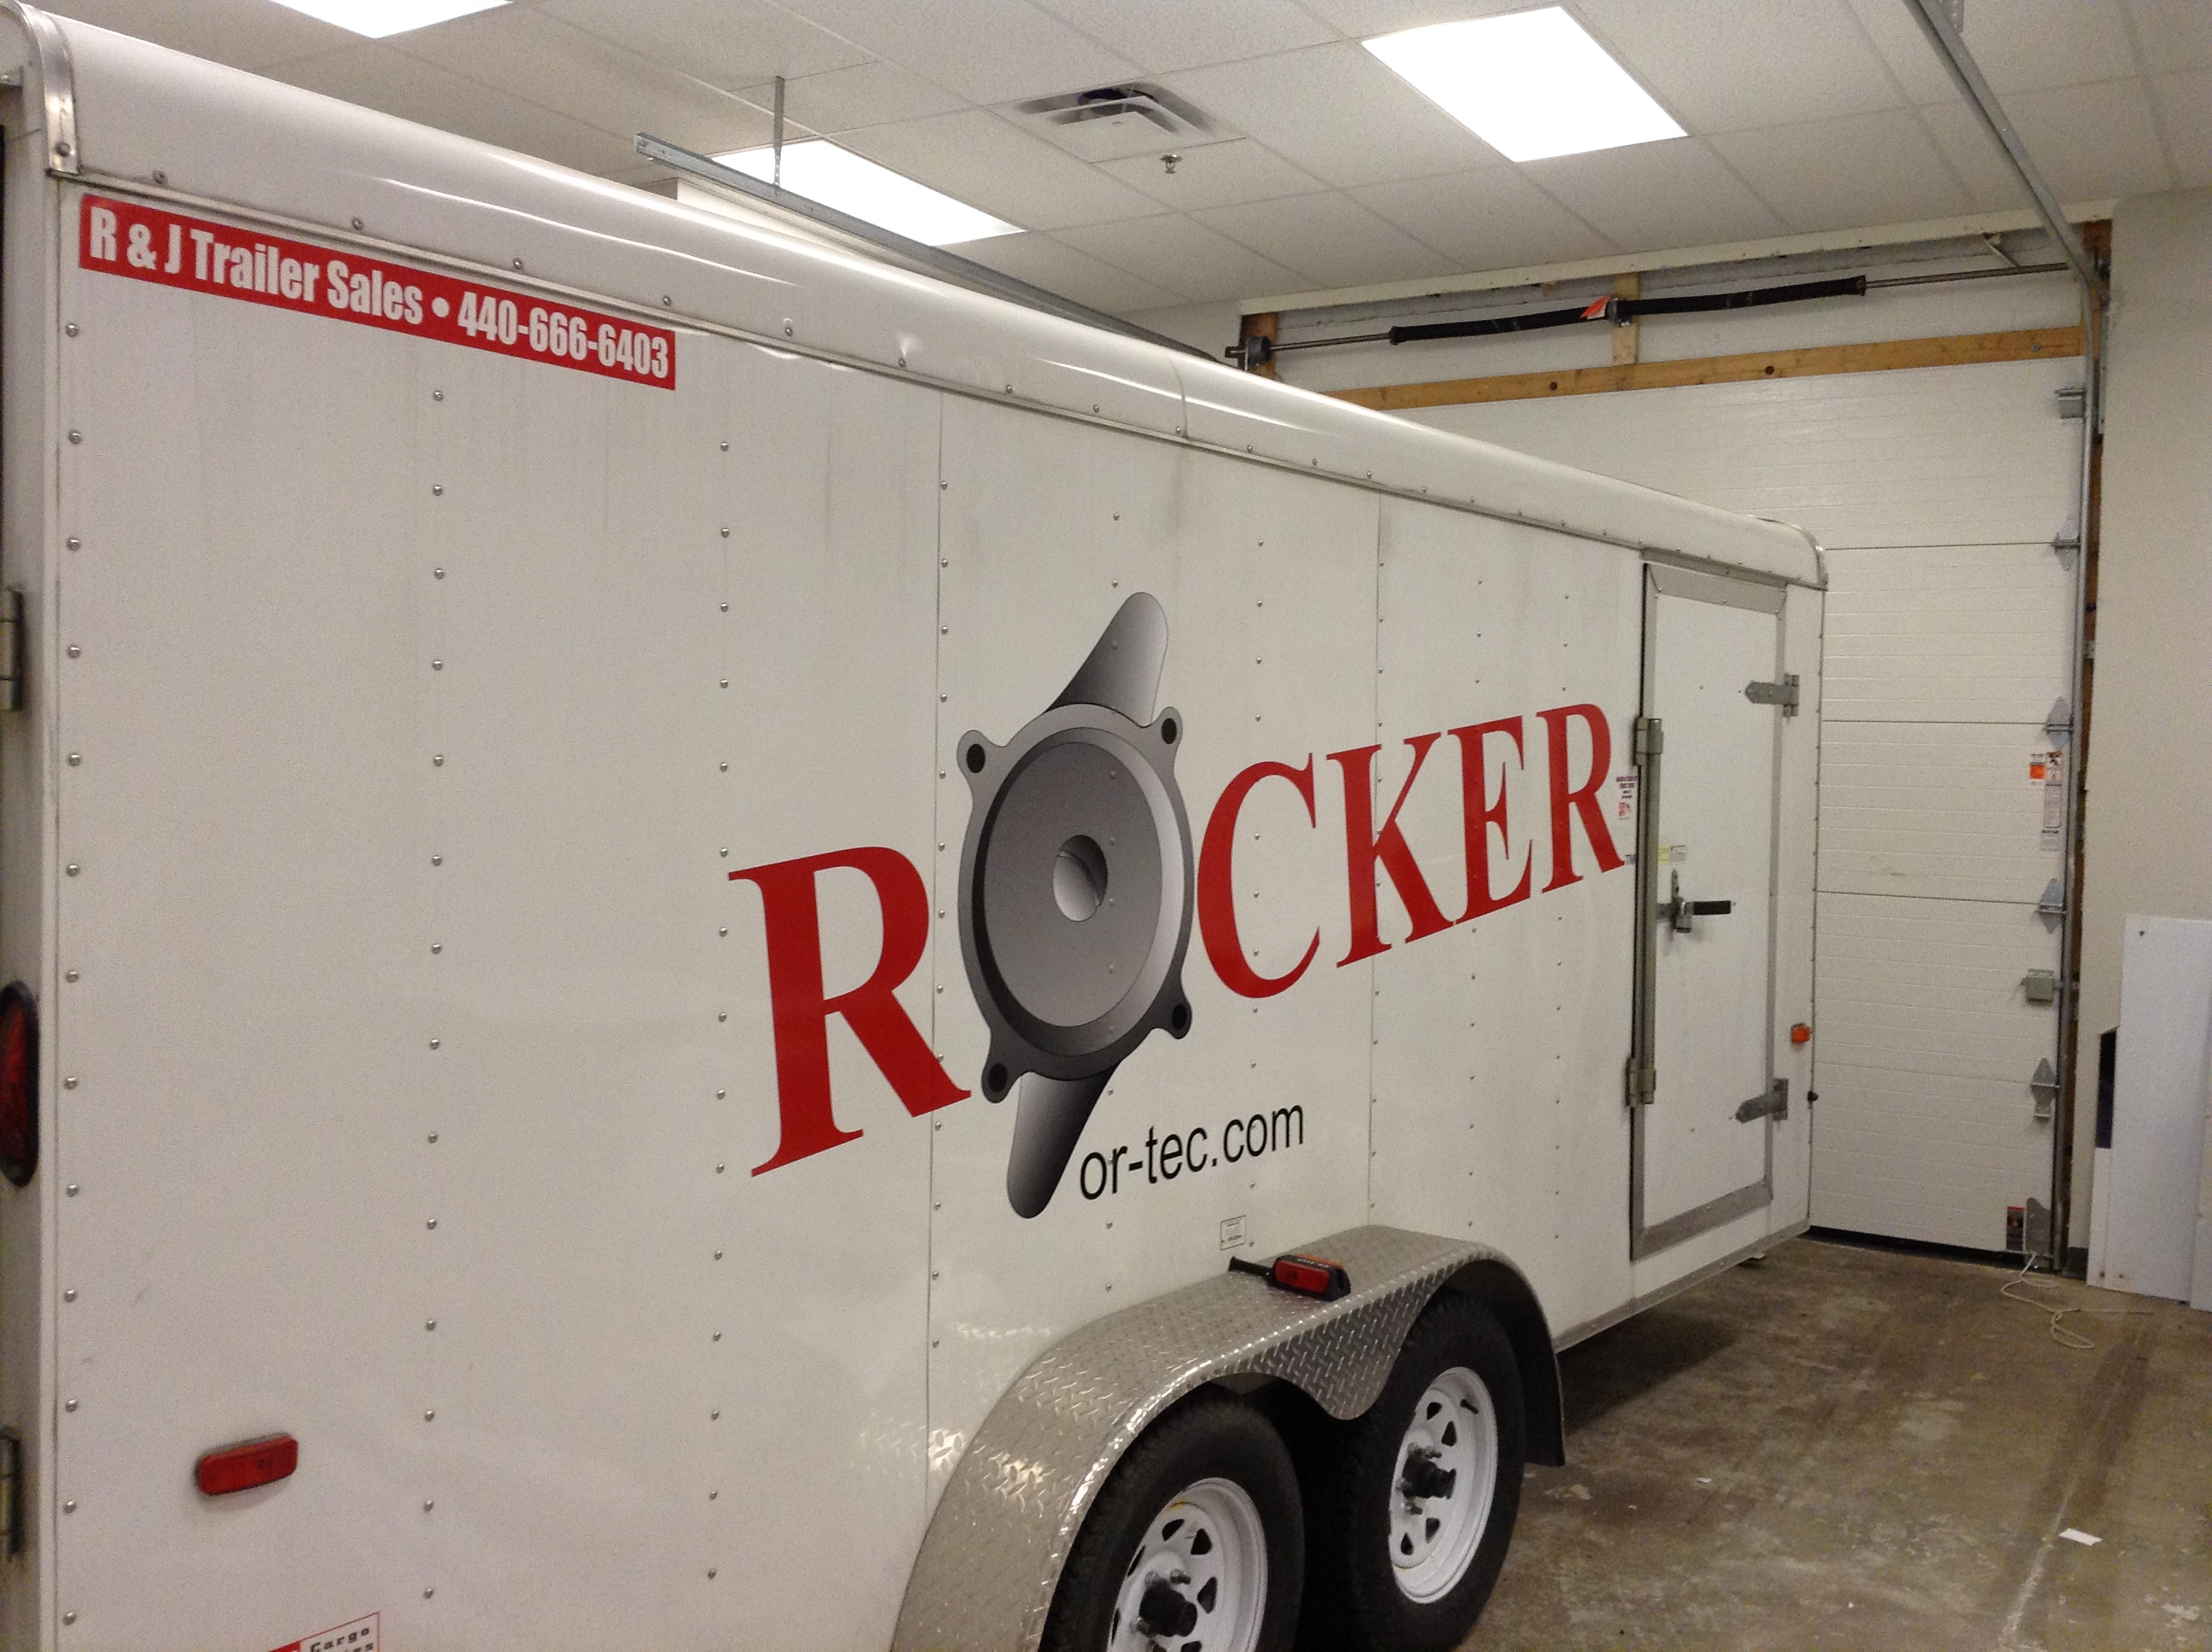 Trailer wrap Parma Oh